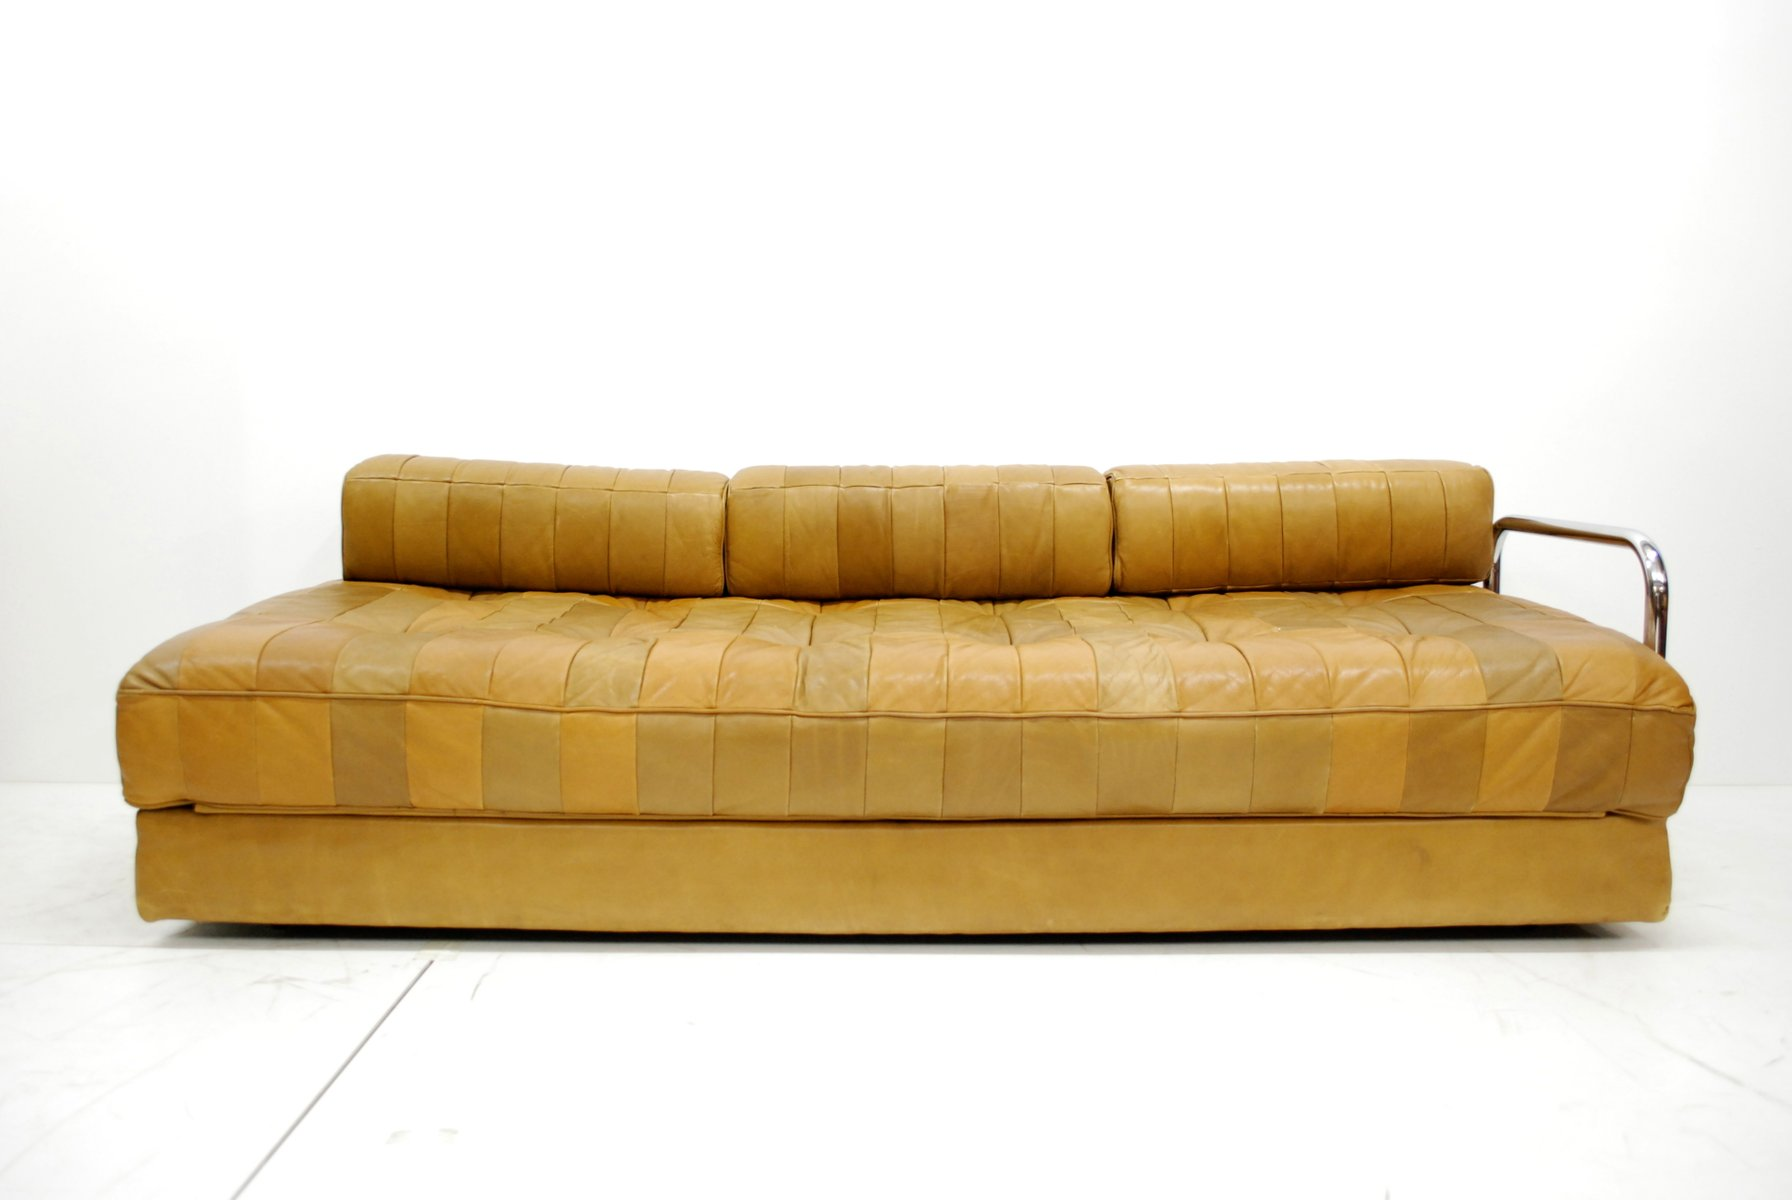 Vintage caramel ds 80 leather daybed from de sede for sale for Schlafsofa patchwork